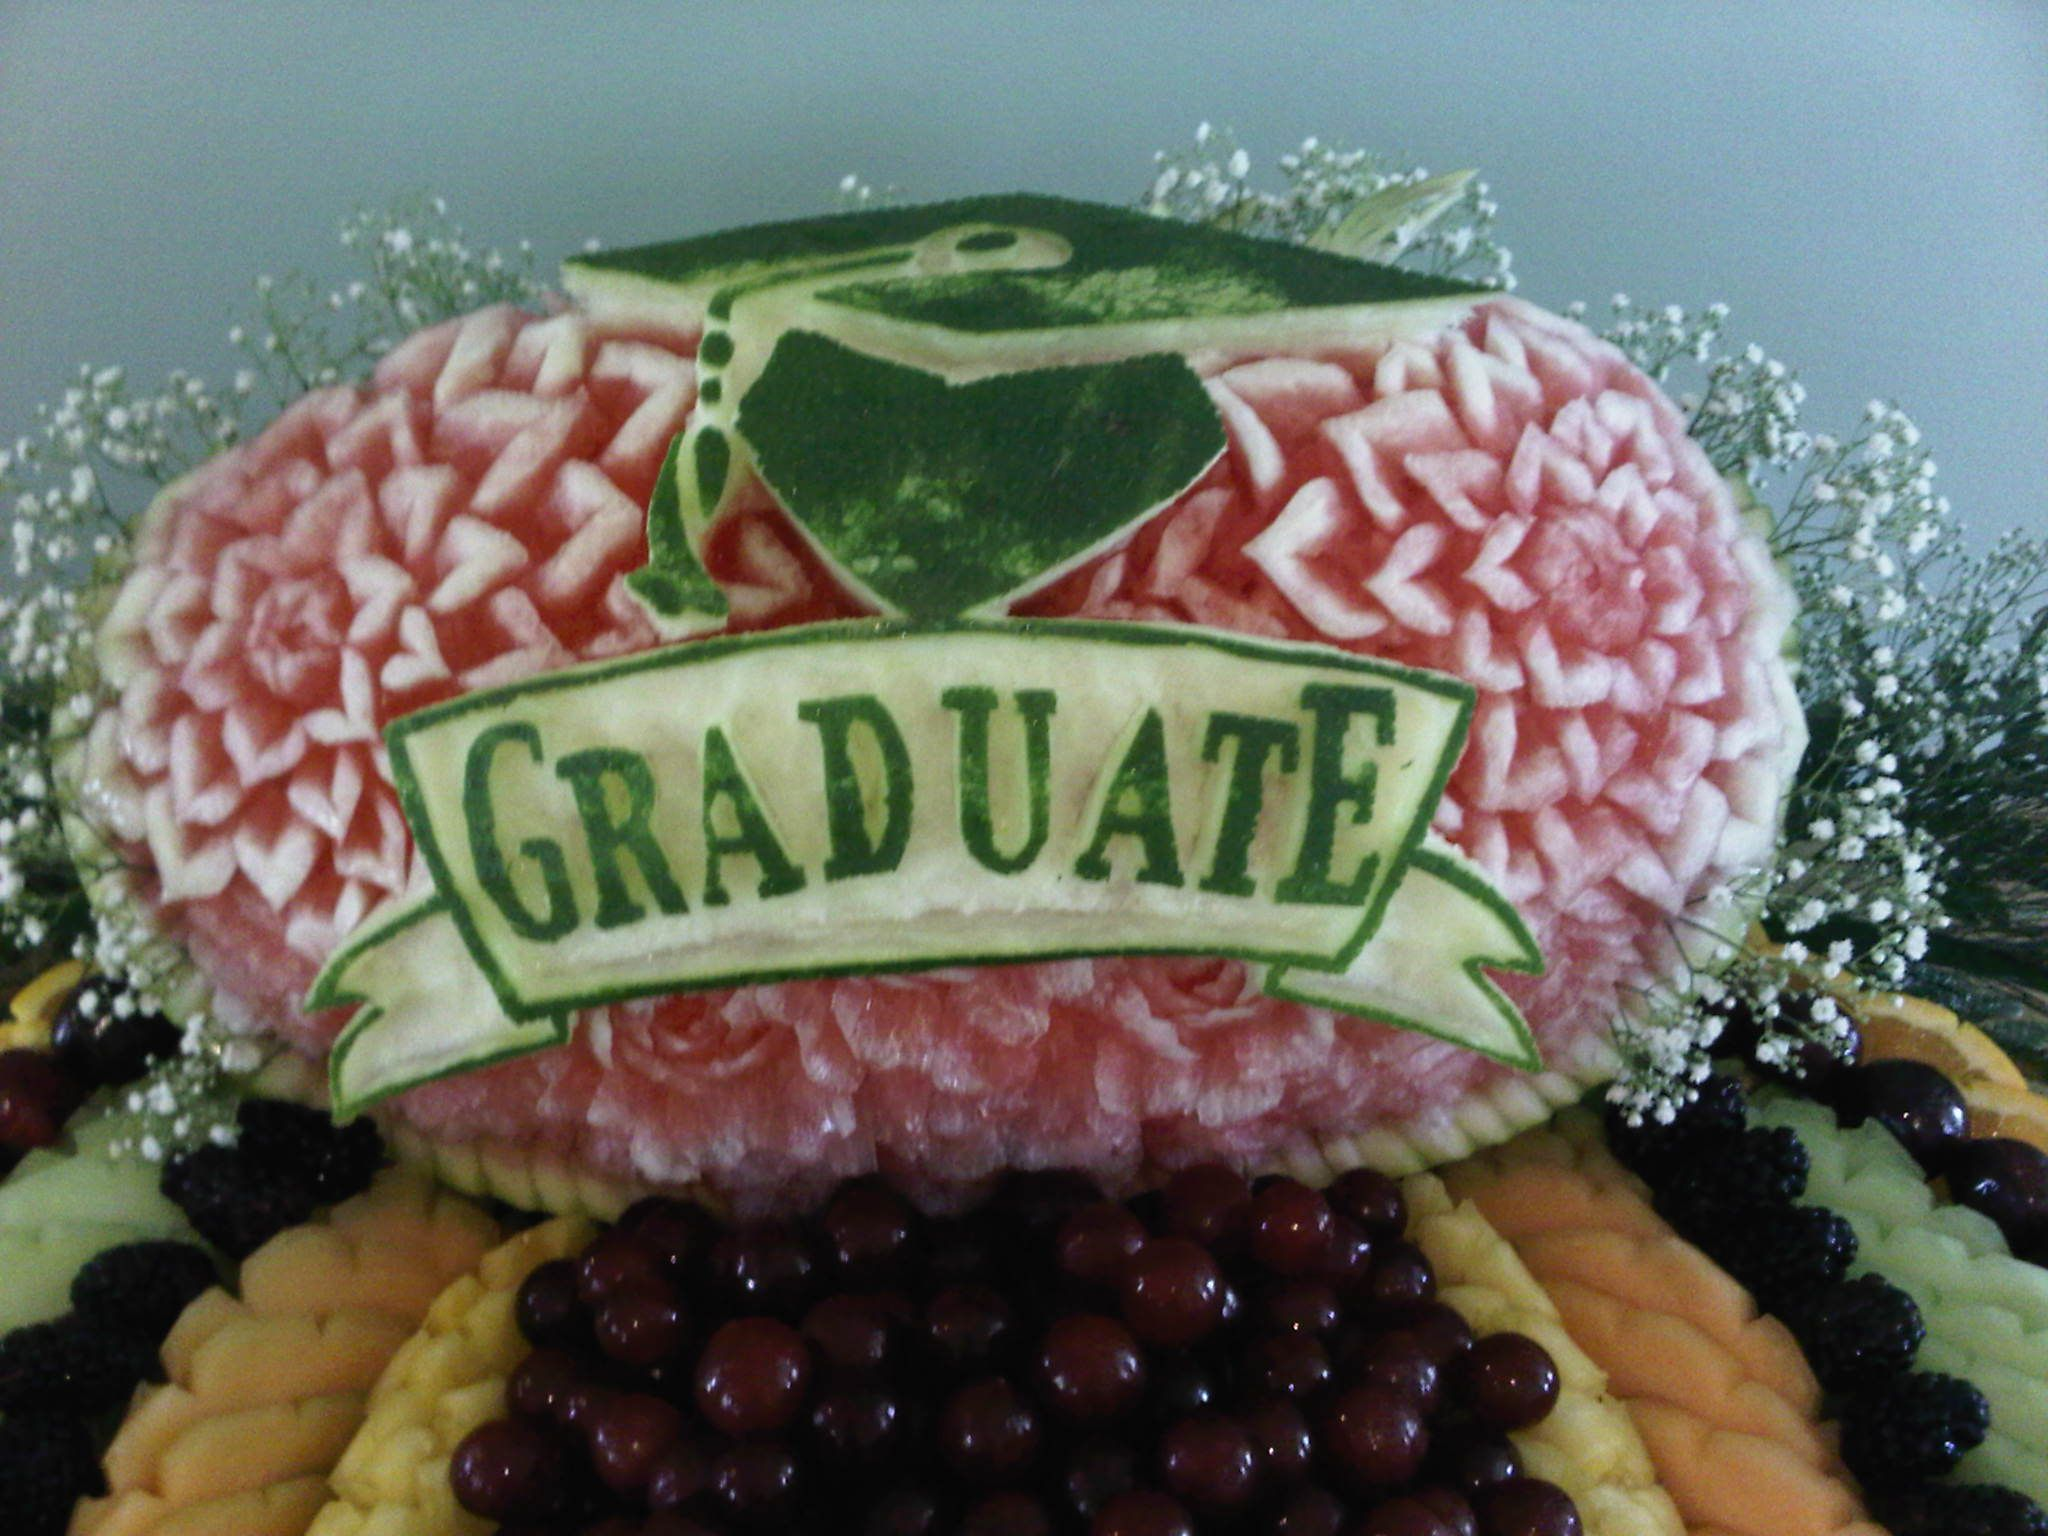 Order this watermelon for your graduation party.I can carve your ...